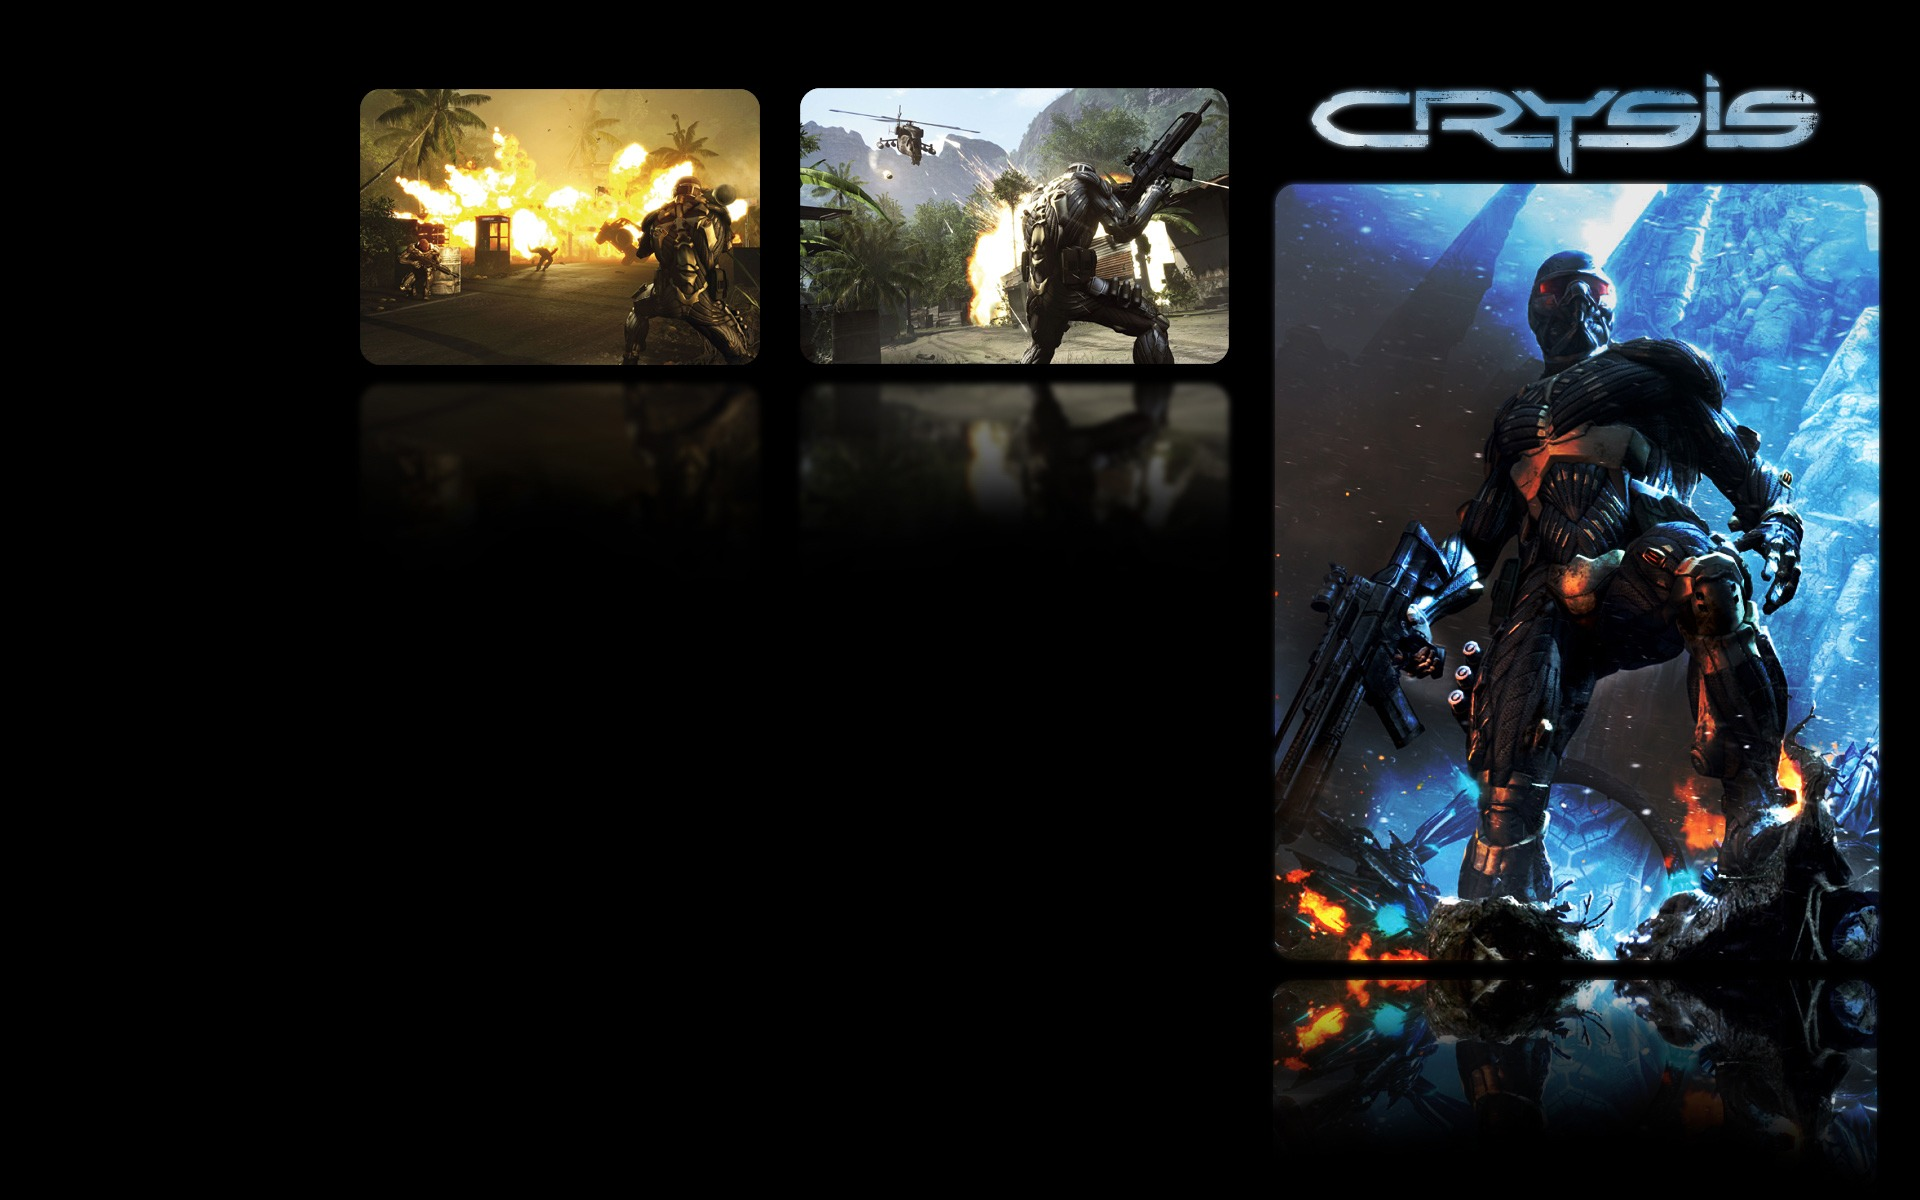 Crysis Game Widescreen